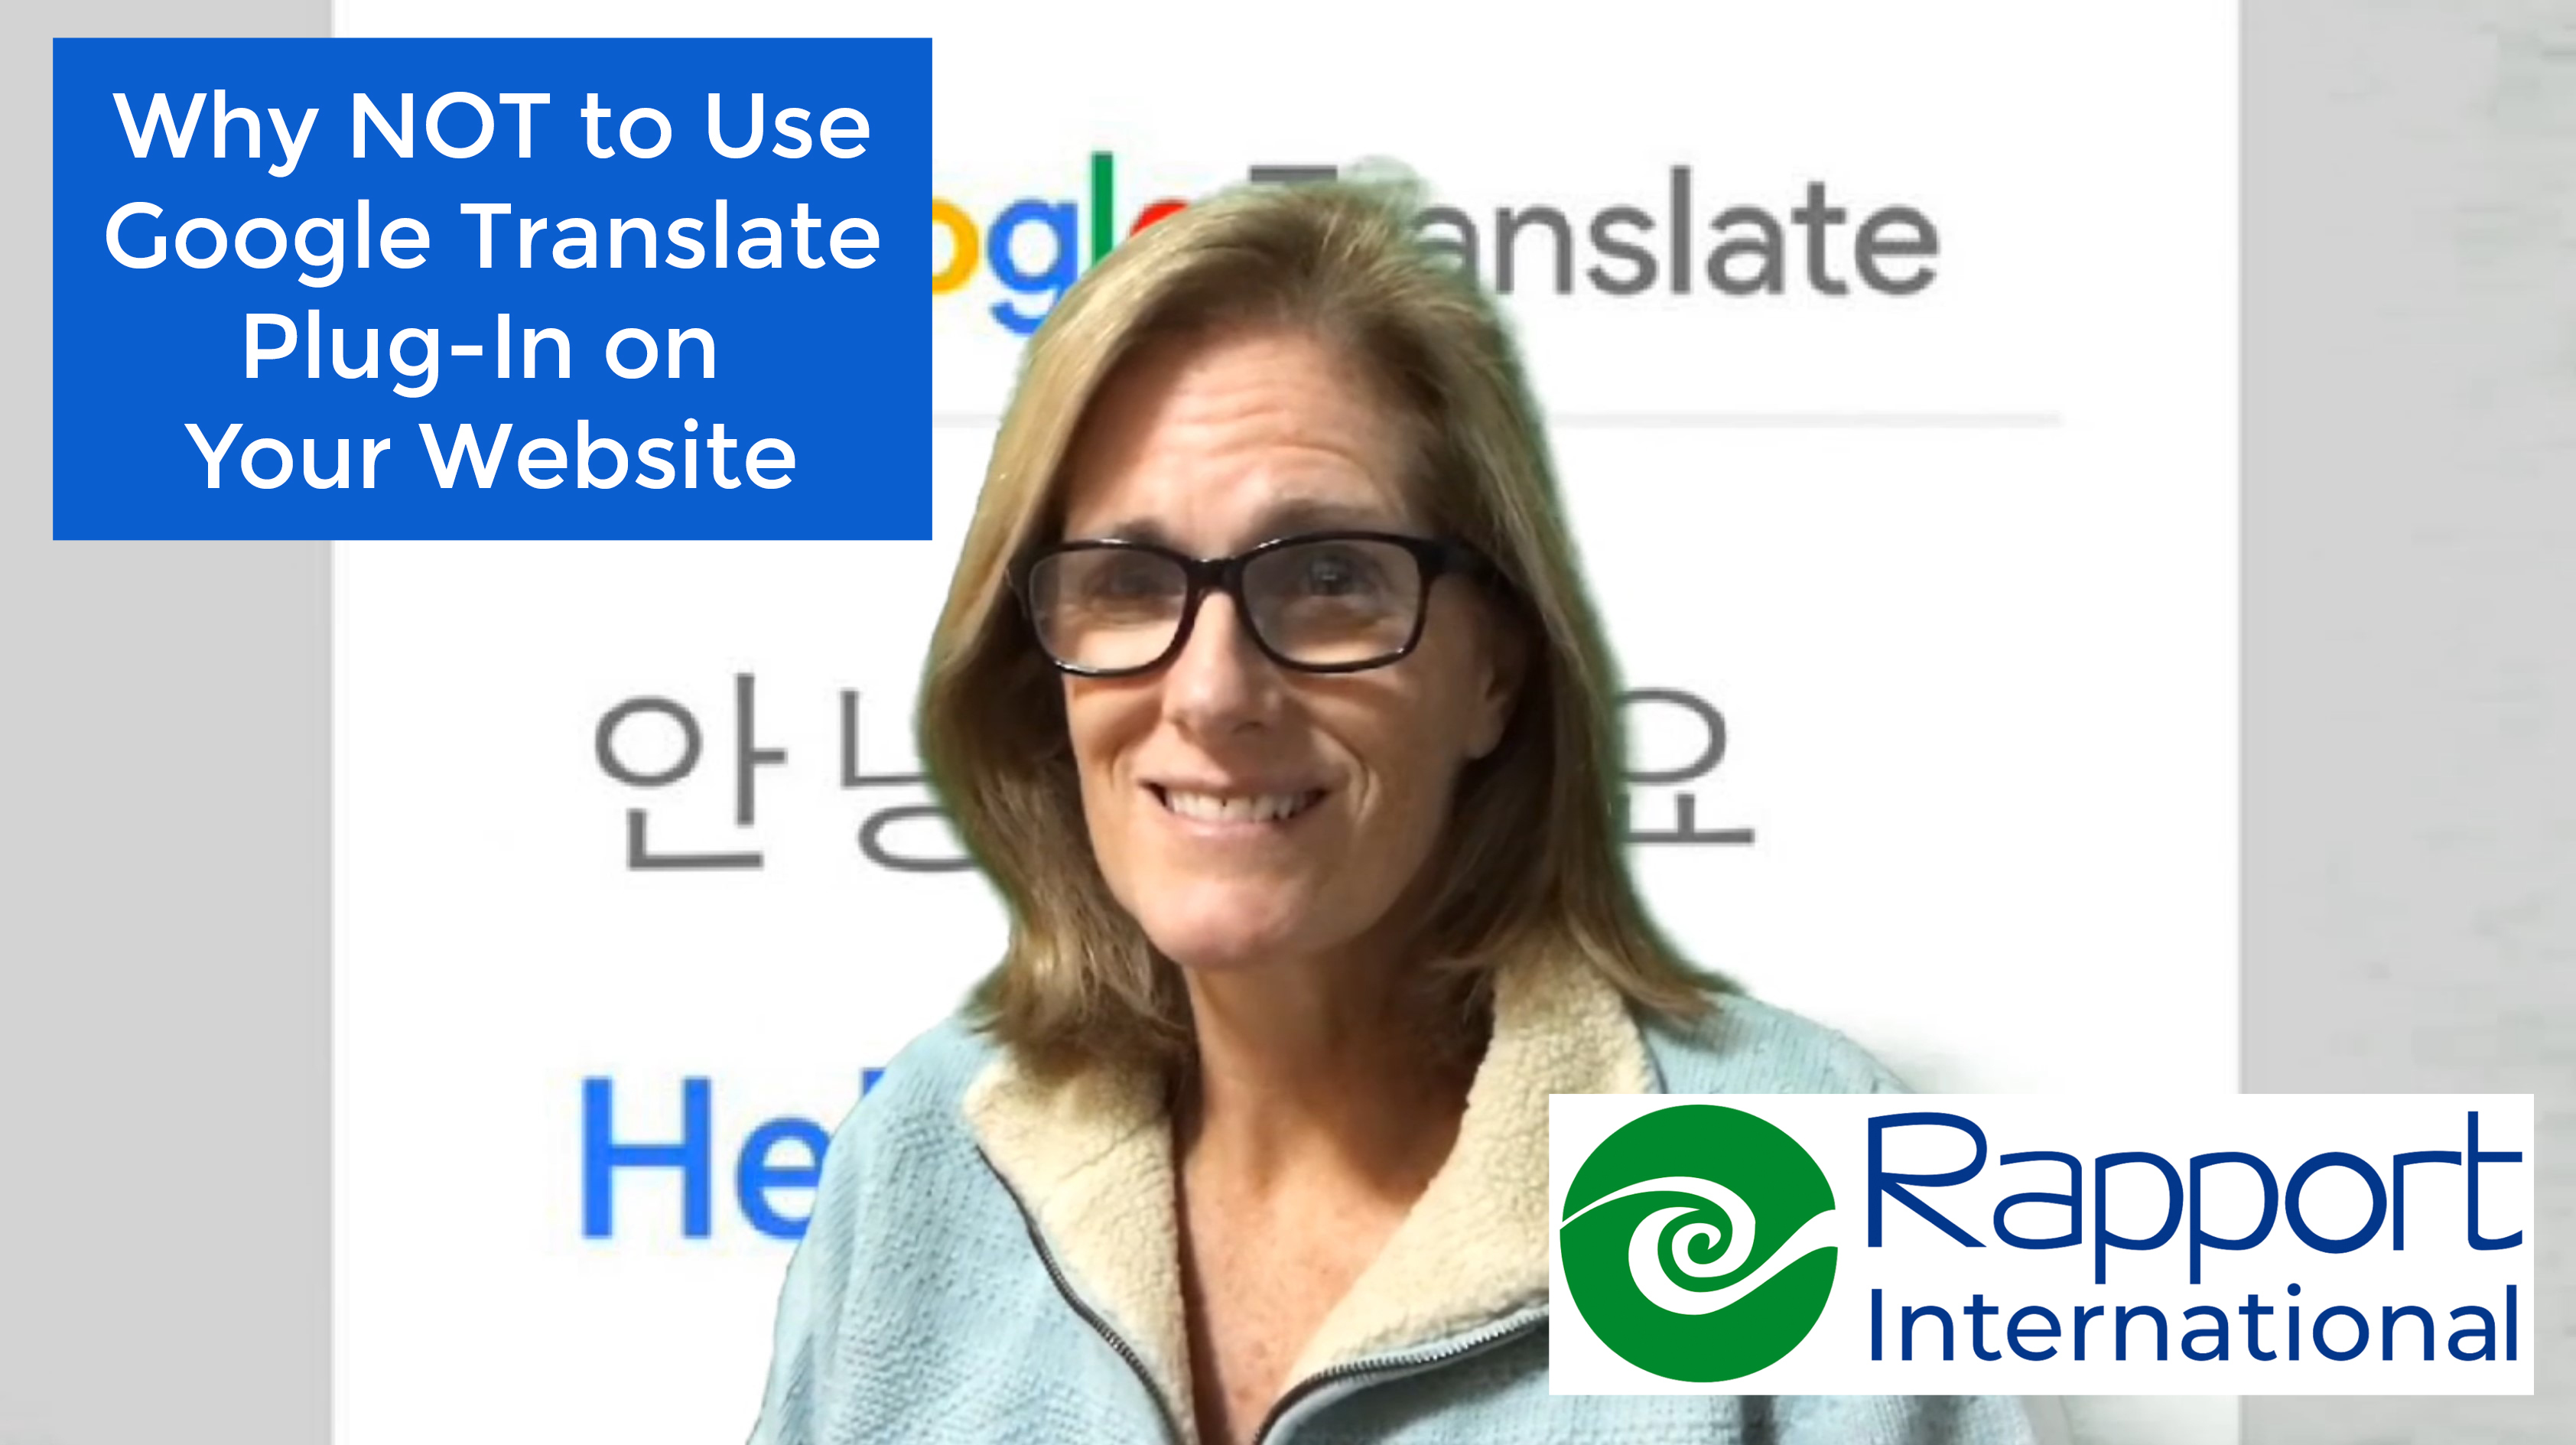 Why NOT to use Google Translate plug-in on your website